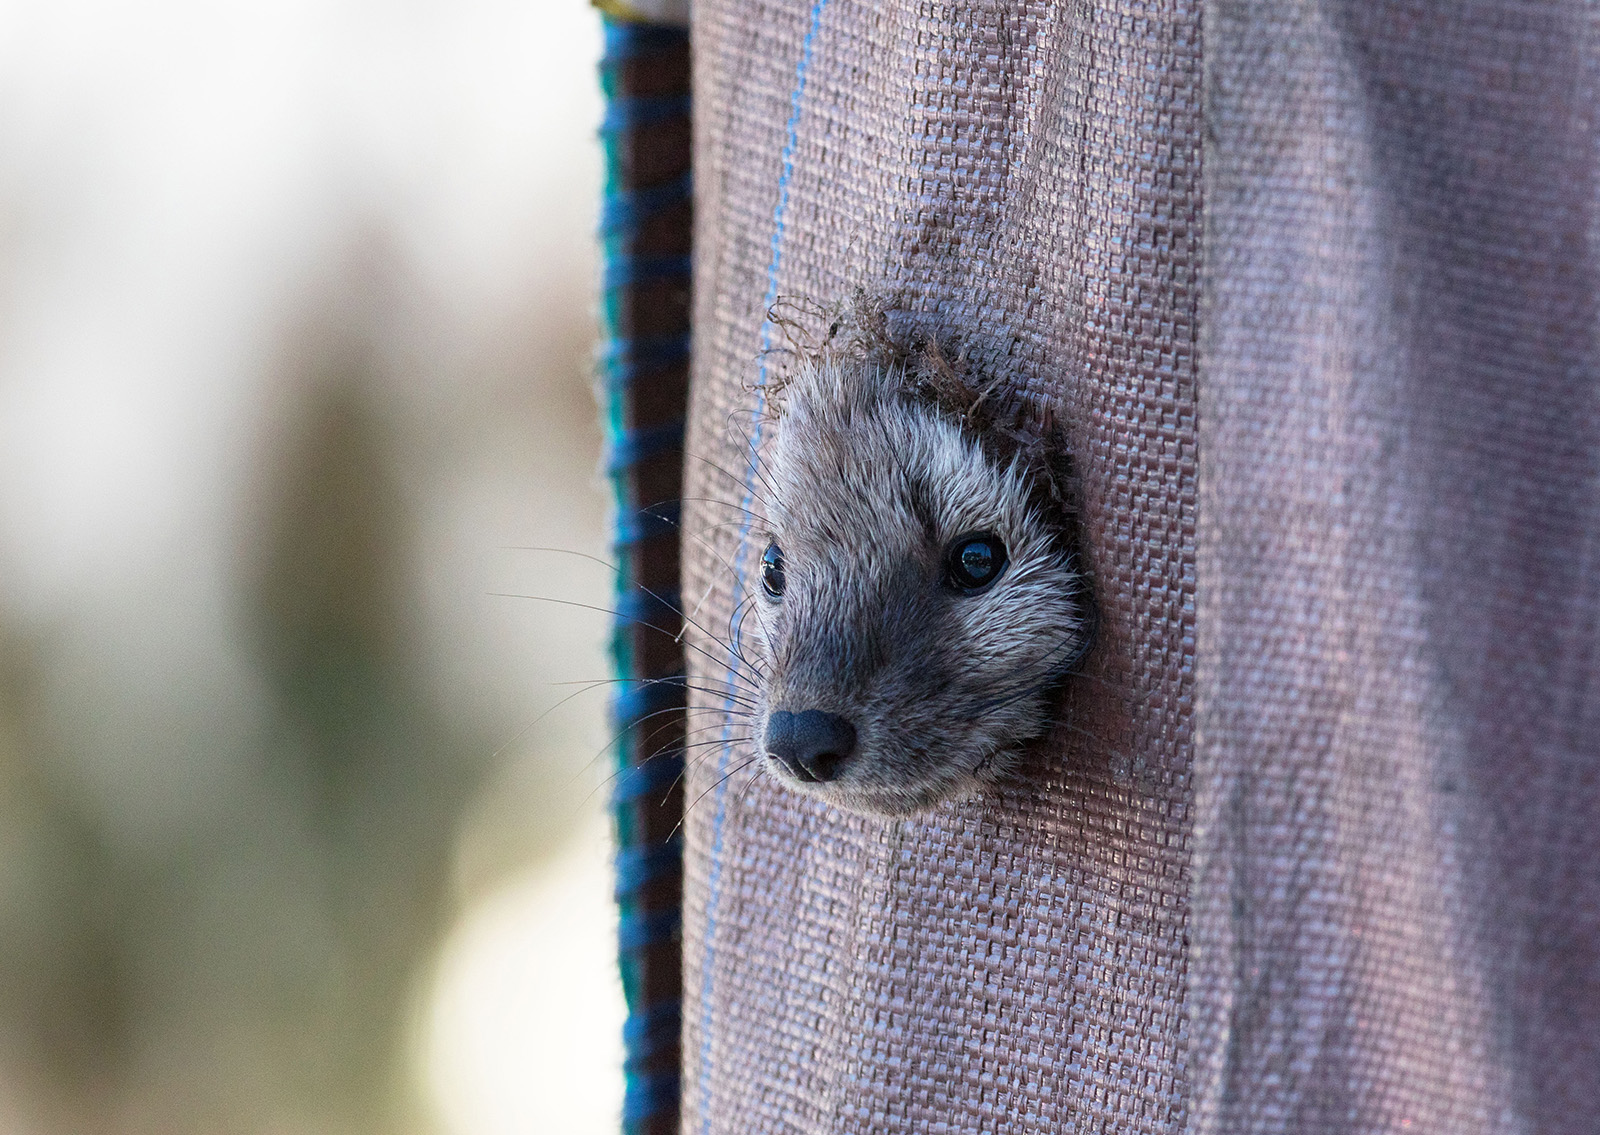 A marten peeks out of a piece of burlap